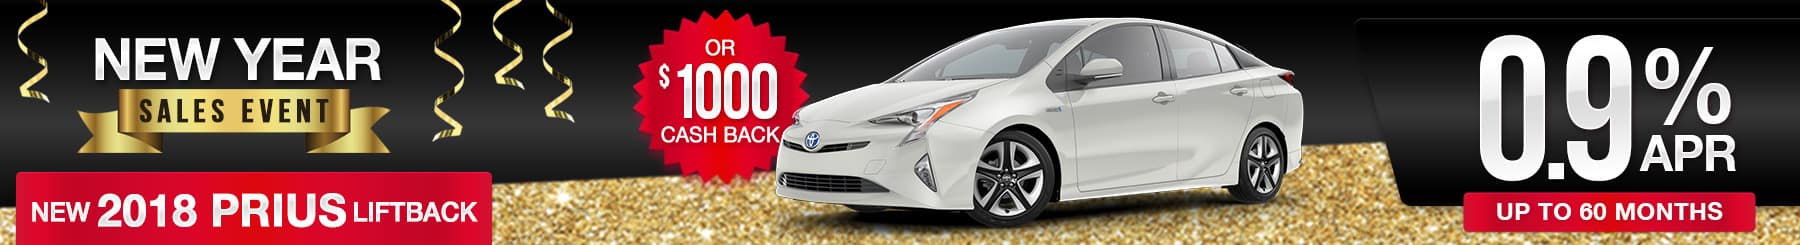 2018 Prius Finance Special